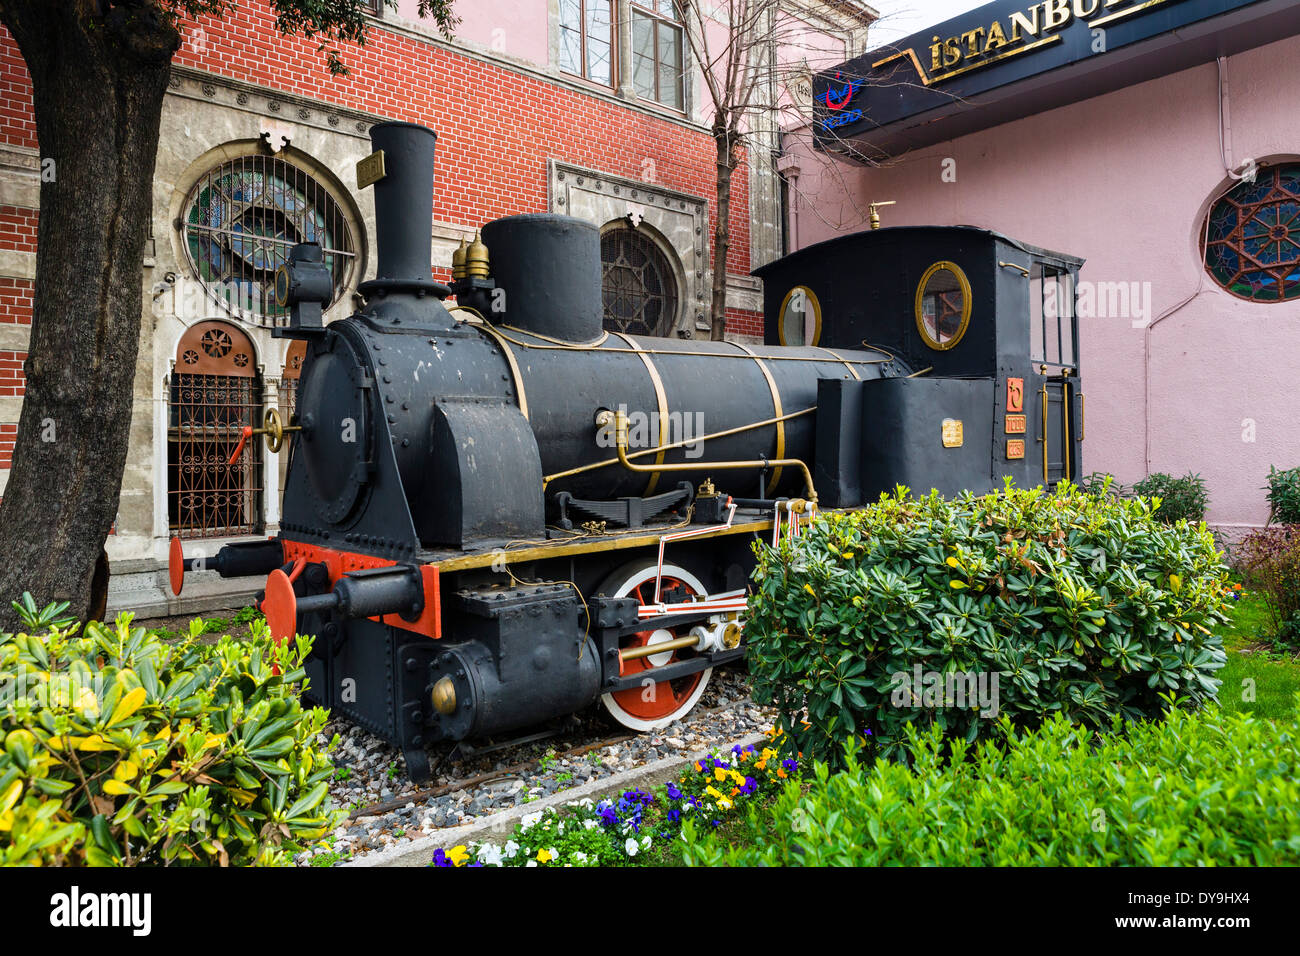 Old steam engine outside Sirkeci Station, the former eastern terminus of the Orient Express, Eminonu district, Istanbul,Turkey - Stock Image